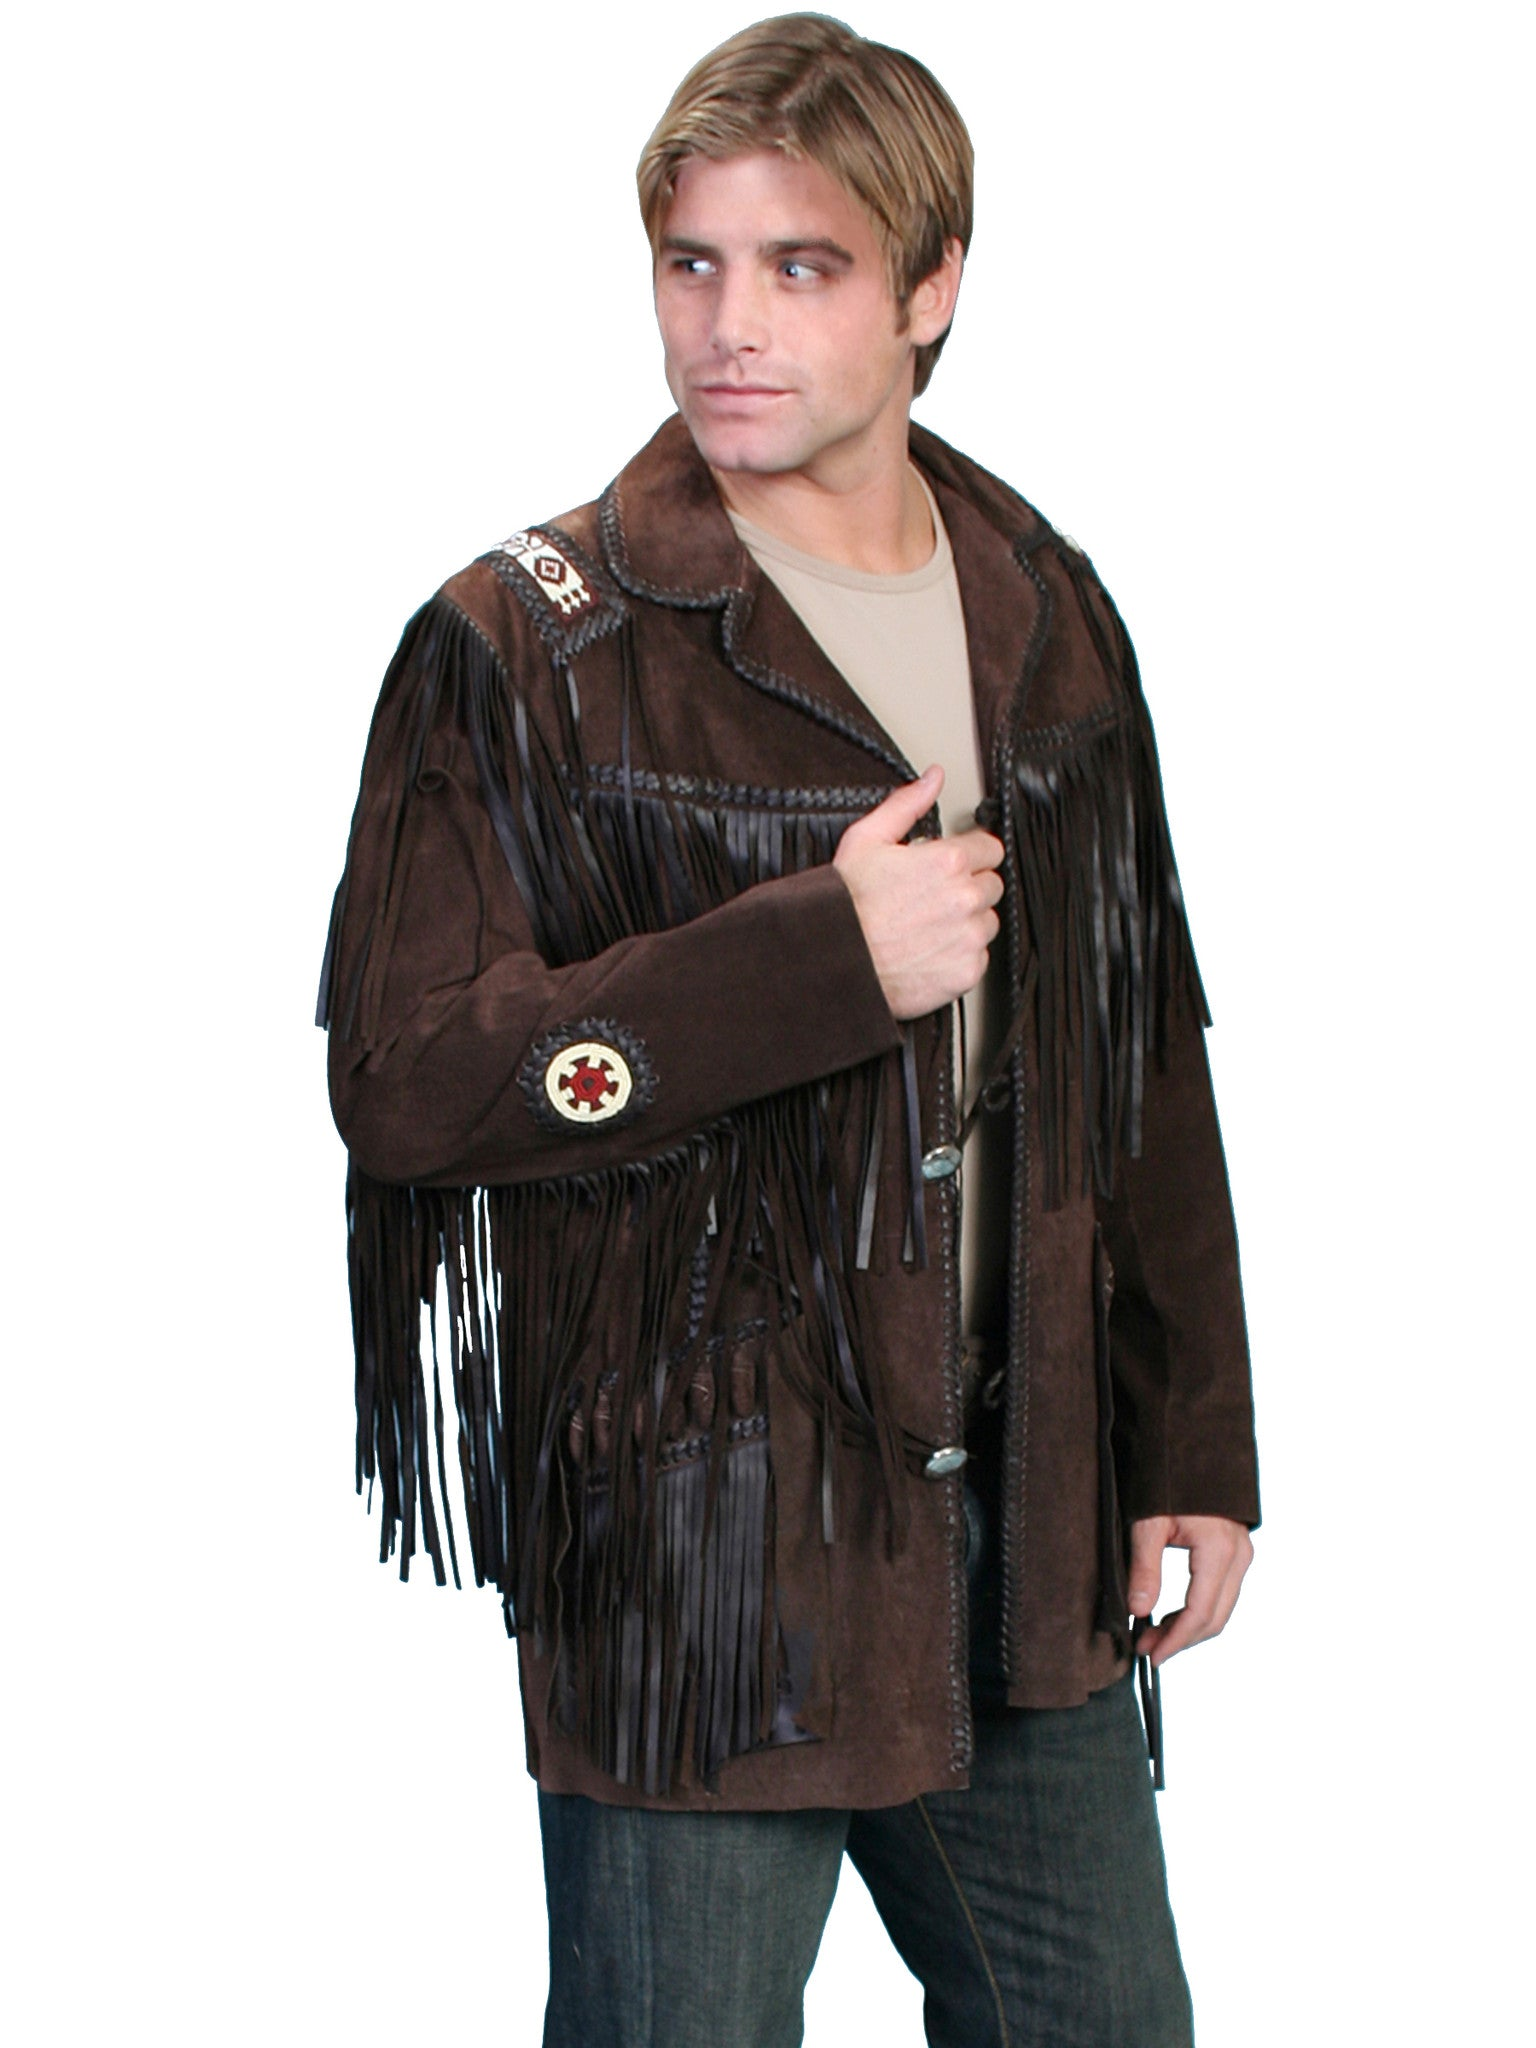 f33ba6d53 Men's Leather Jacket Collection: Scully Western Fringe Sportscoat with  Beads, Expresso